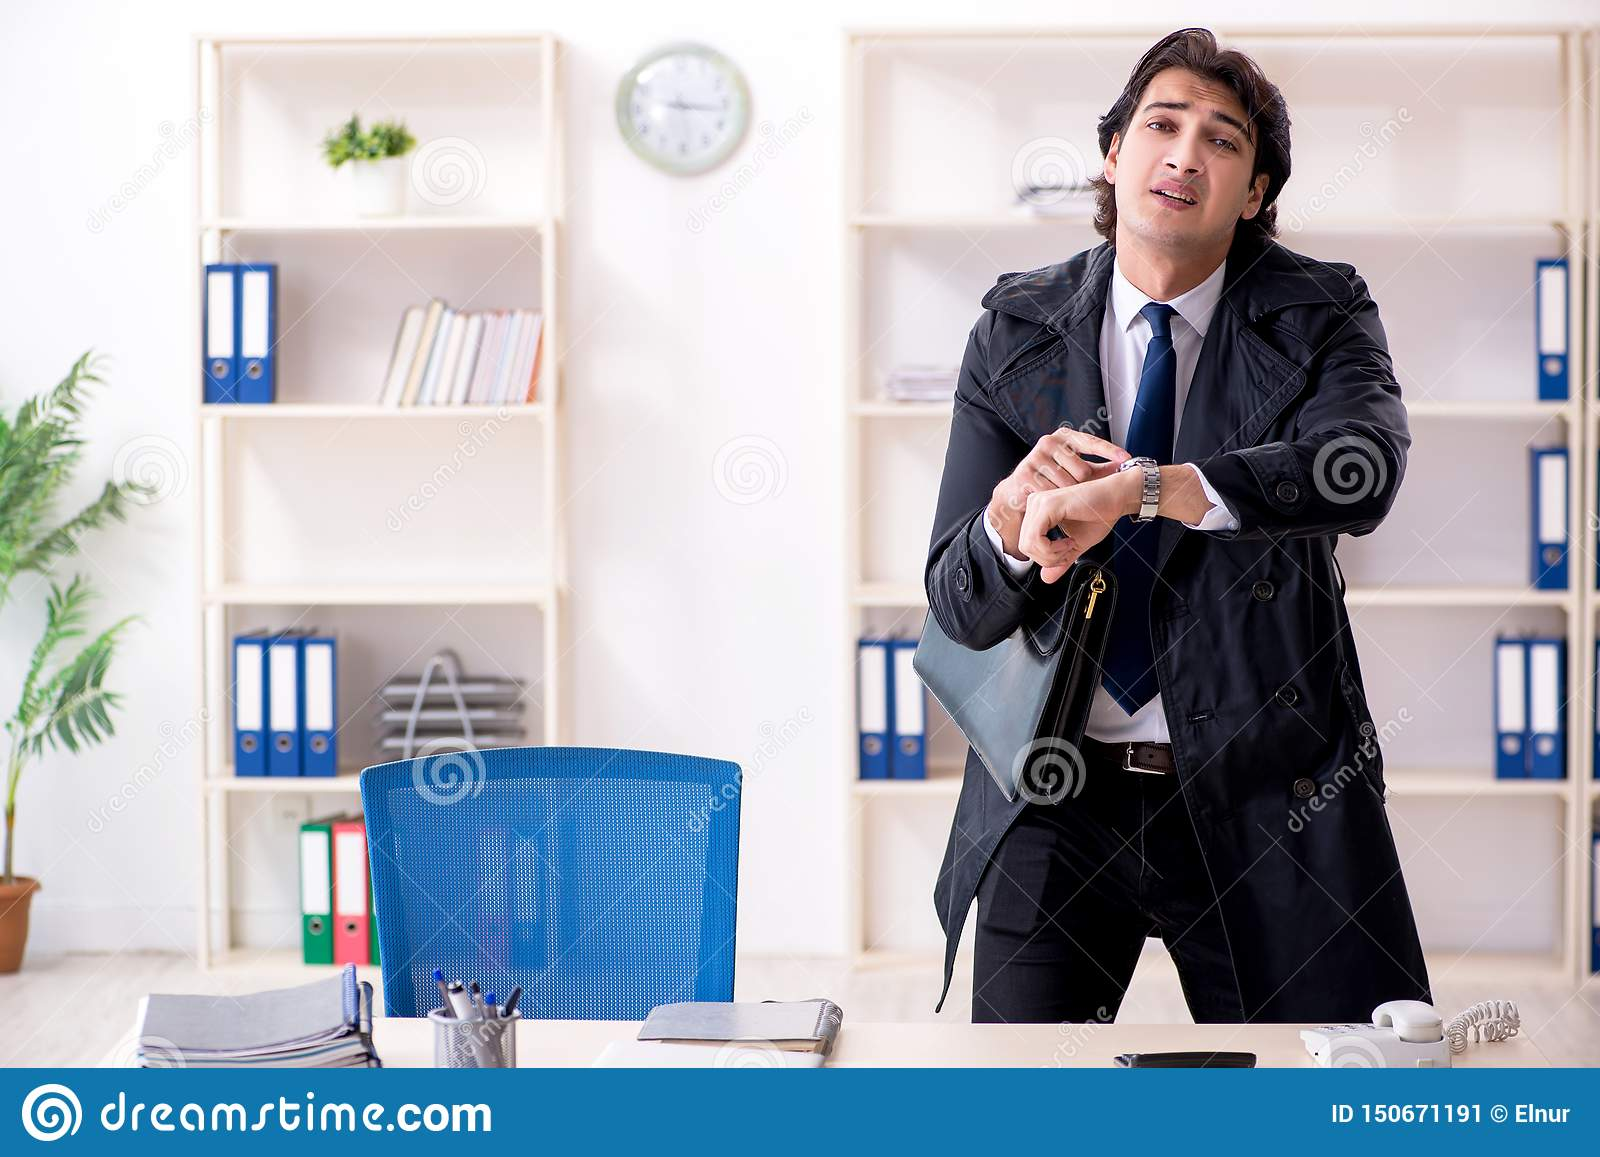 The young male employee in the office in time management concept